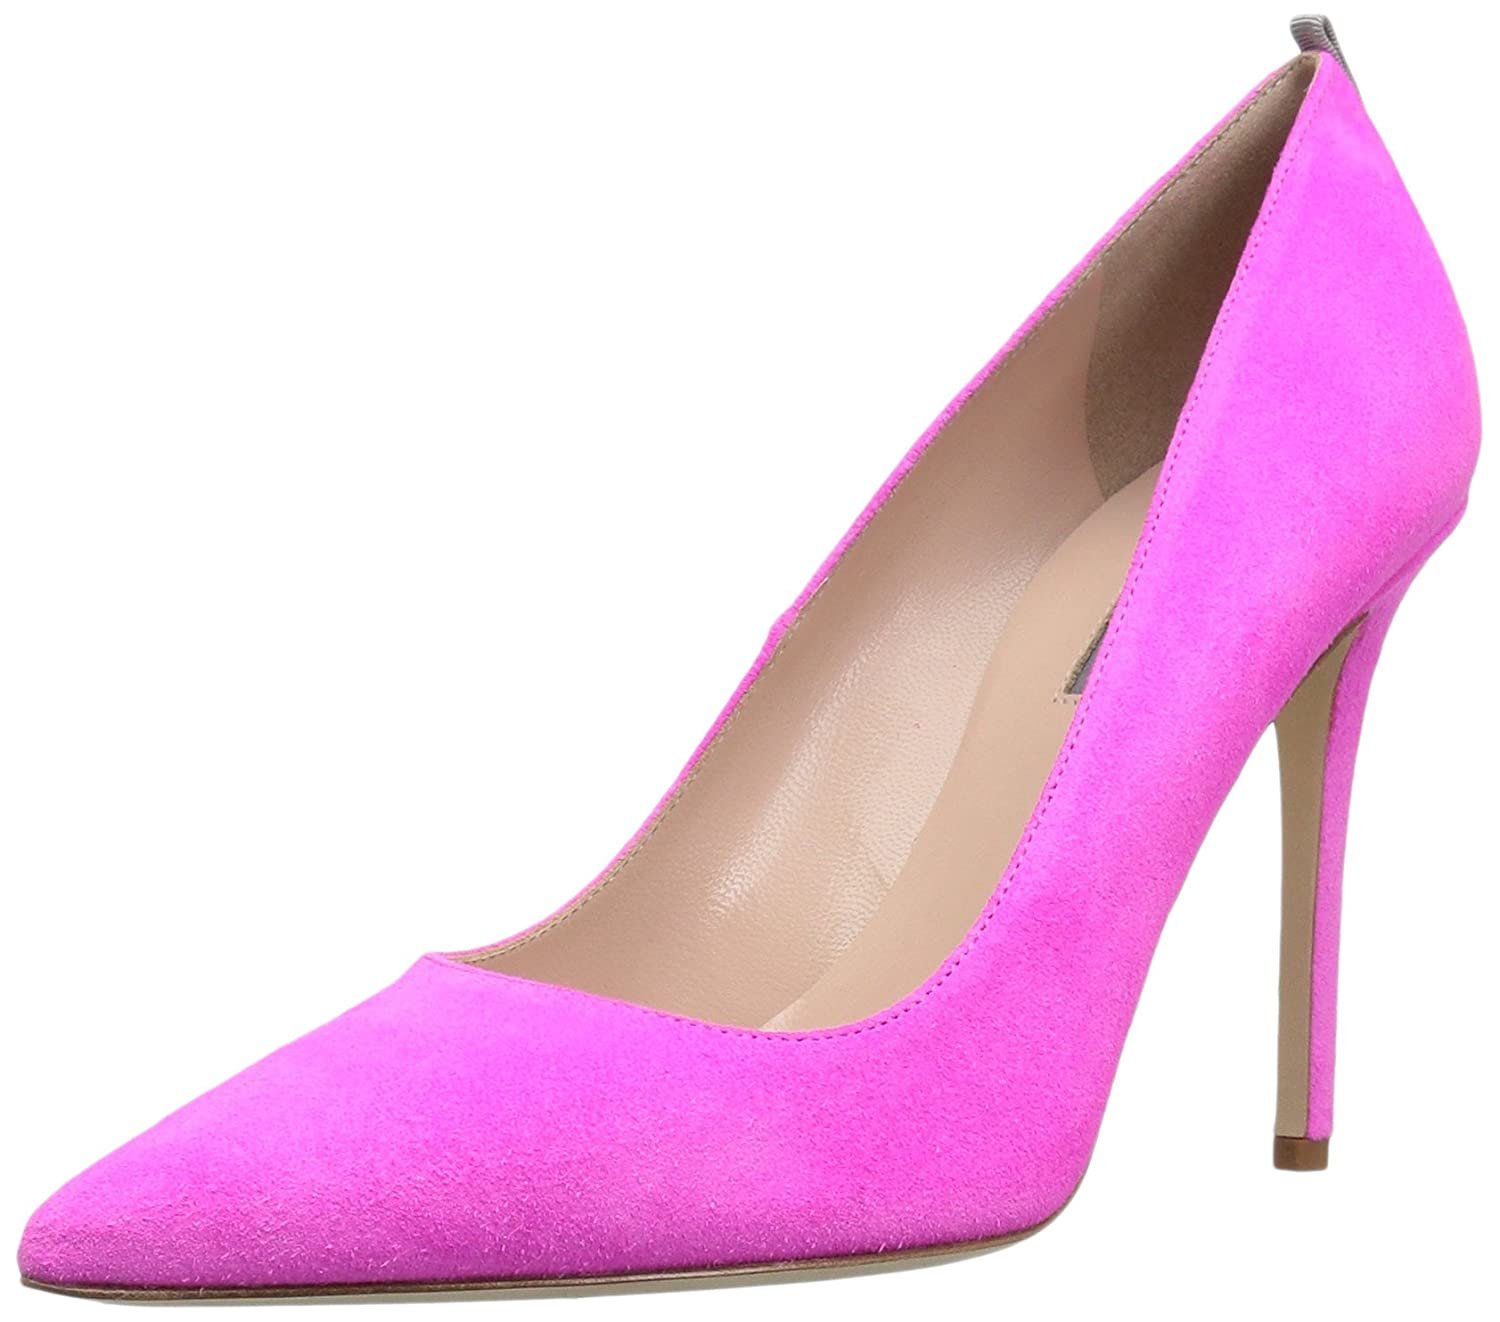 Candy Pink Sued SJP by Sarah Jessica Parker Women's Fawn